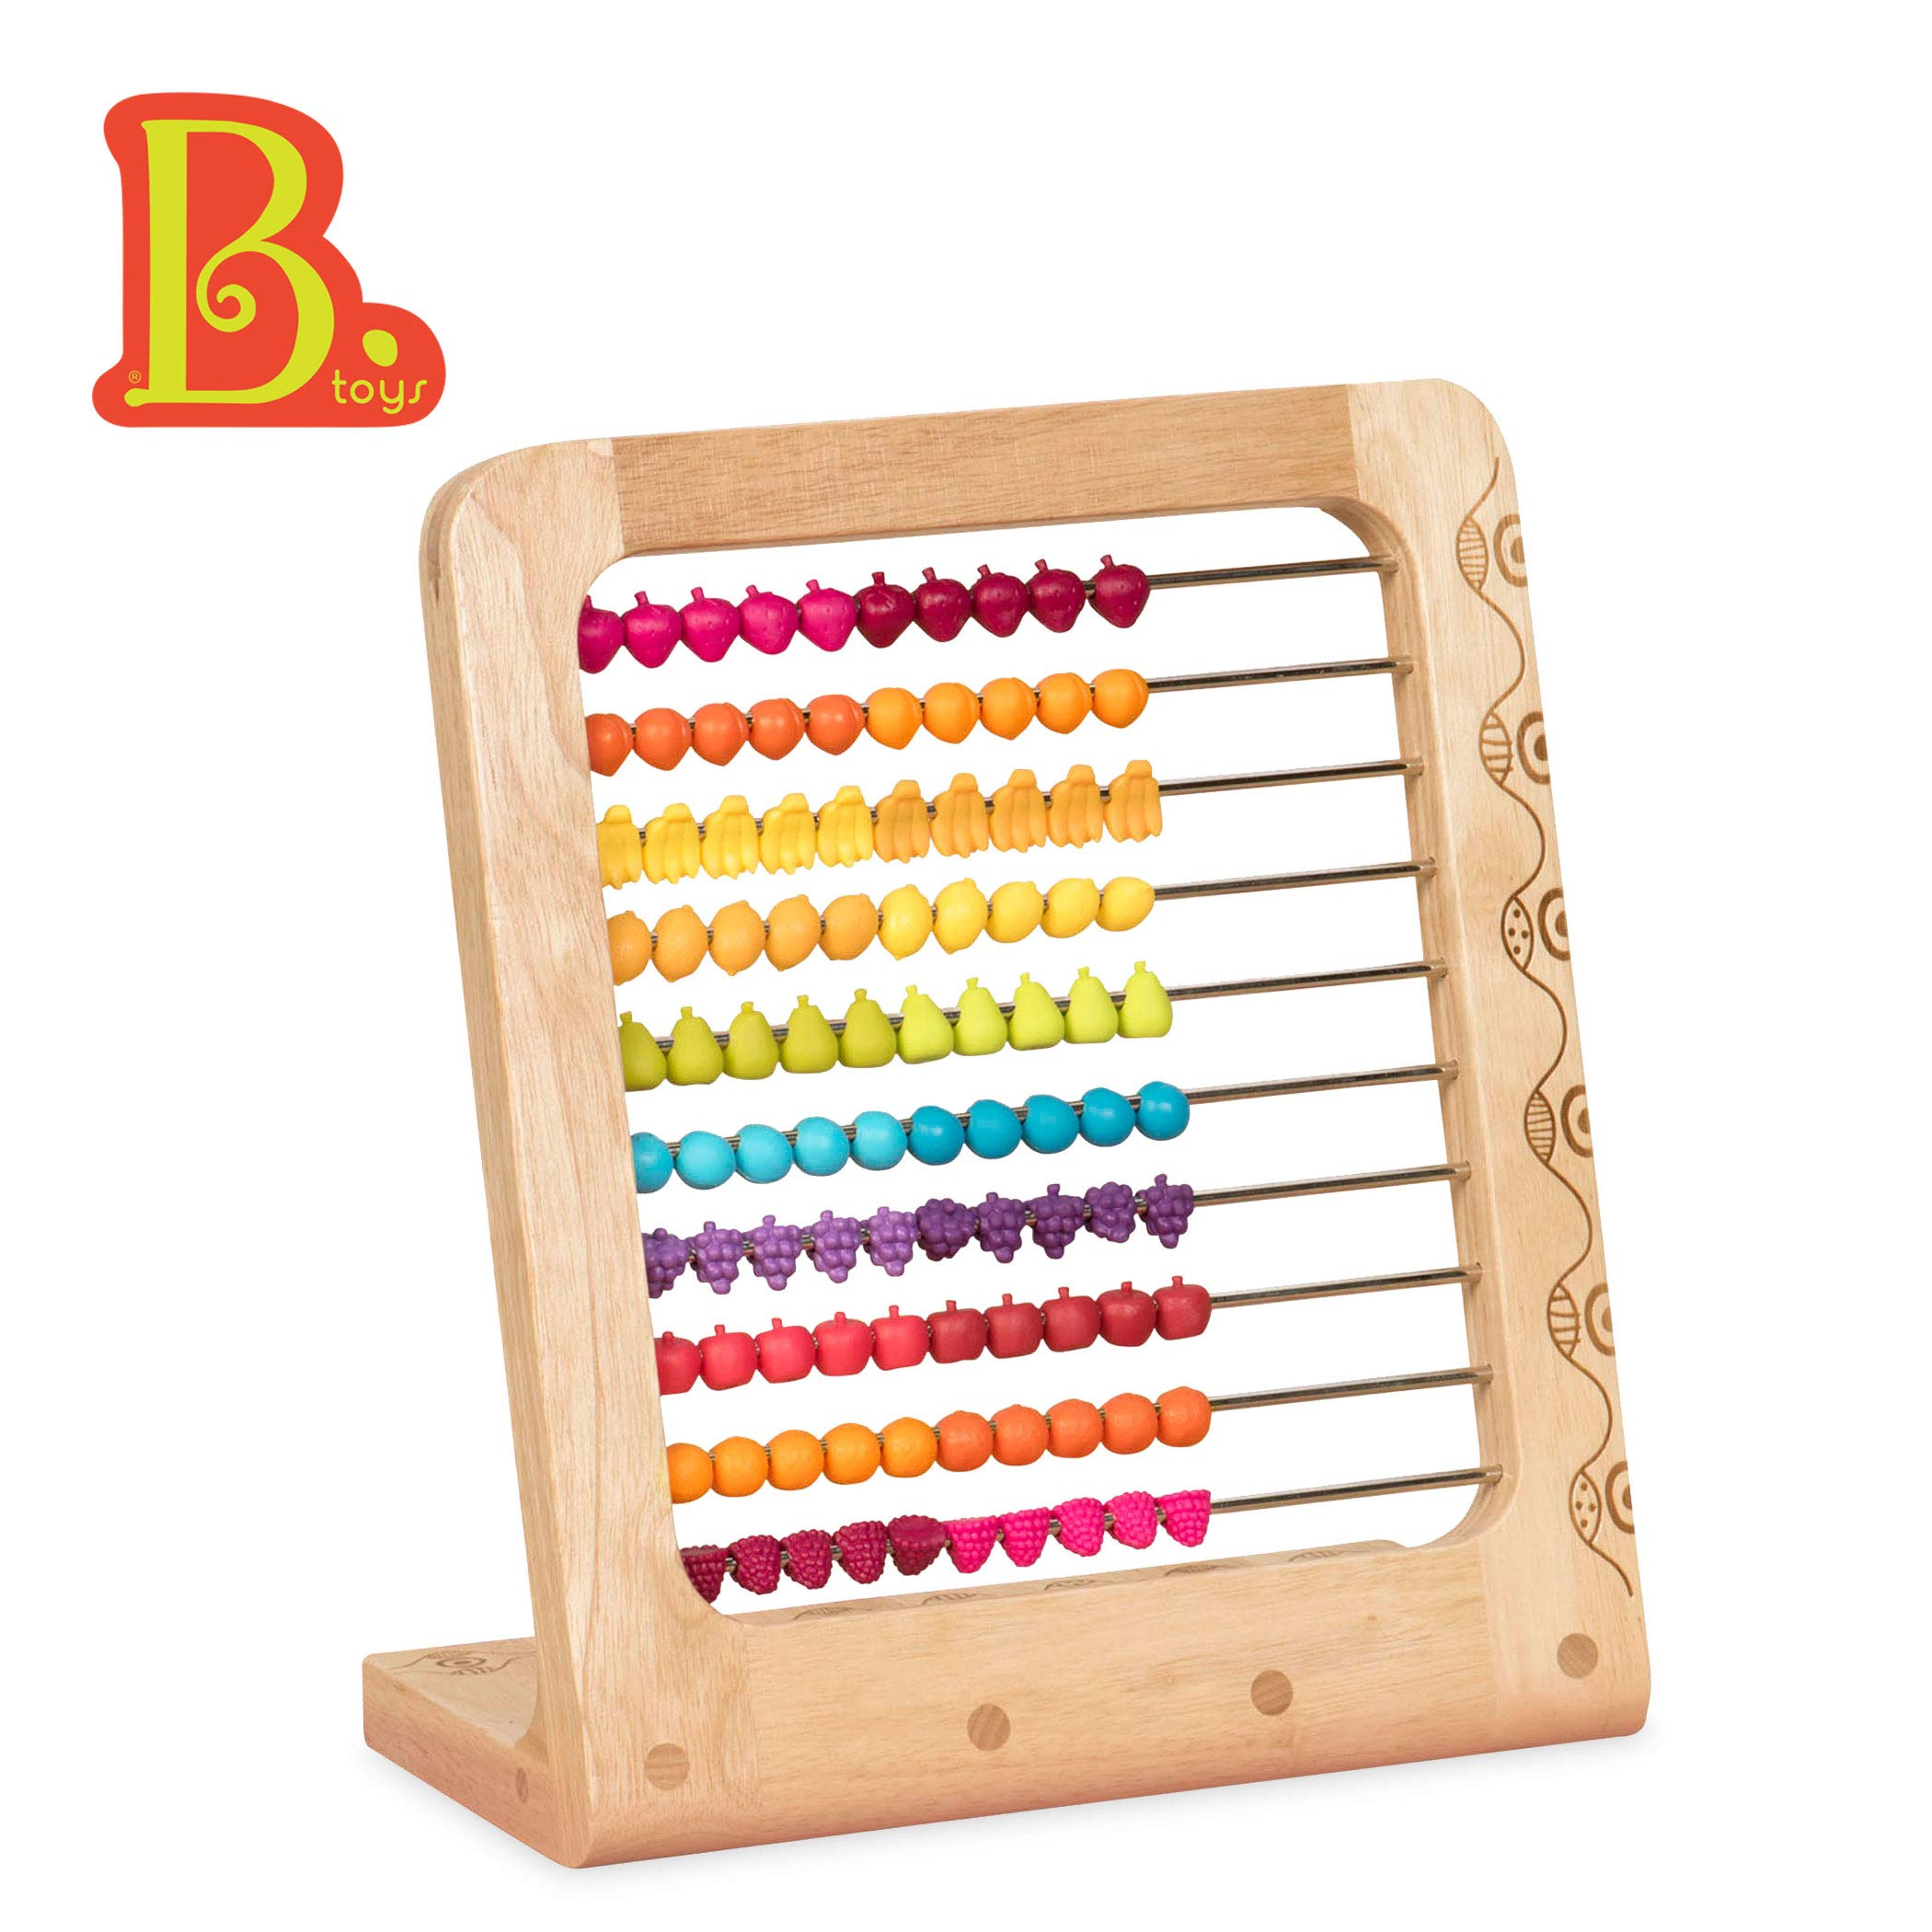 B. toys - Two-ty Fruity! Wooden Abacus Toy - Classic Wooden Math Game Toy for Early Childhood Education and Development with 100 Fruit Beads by B. toys by Battat